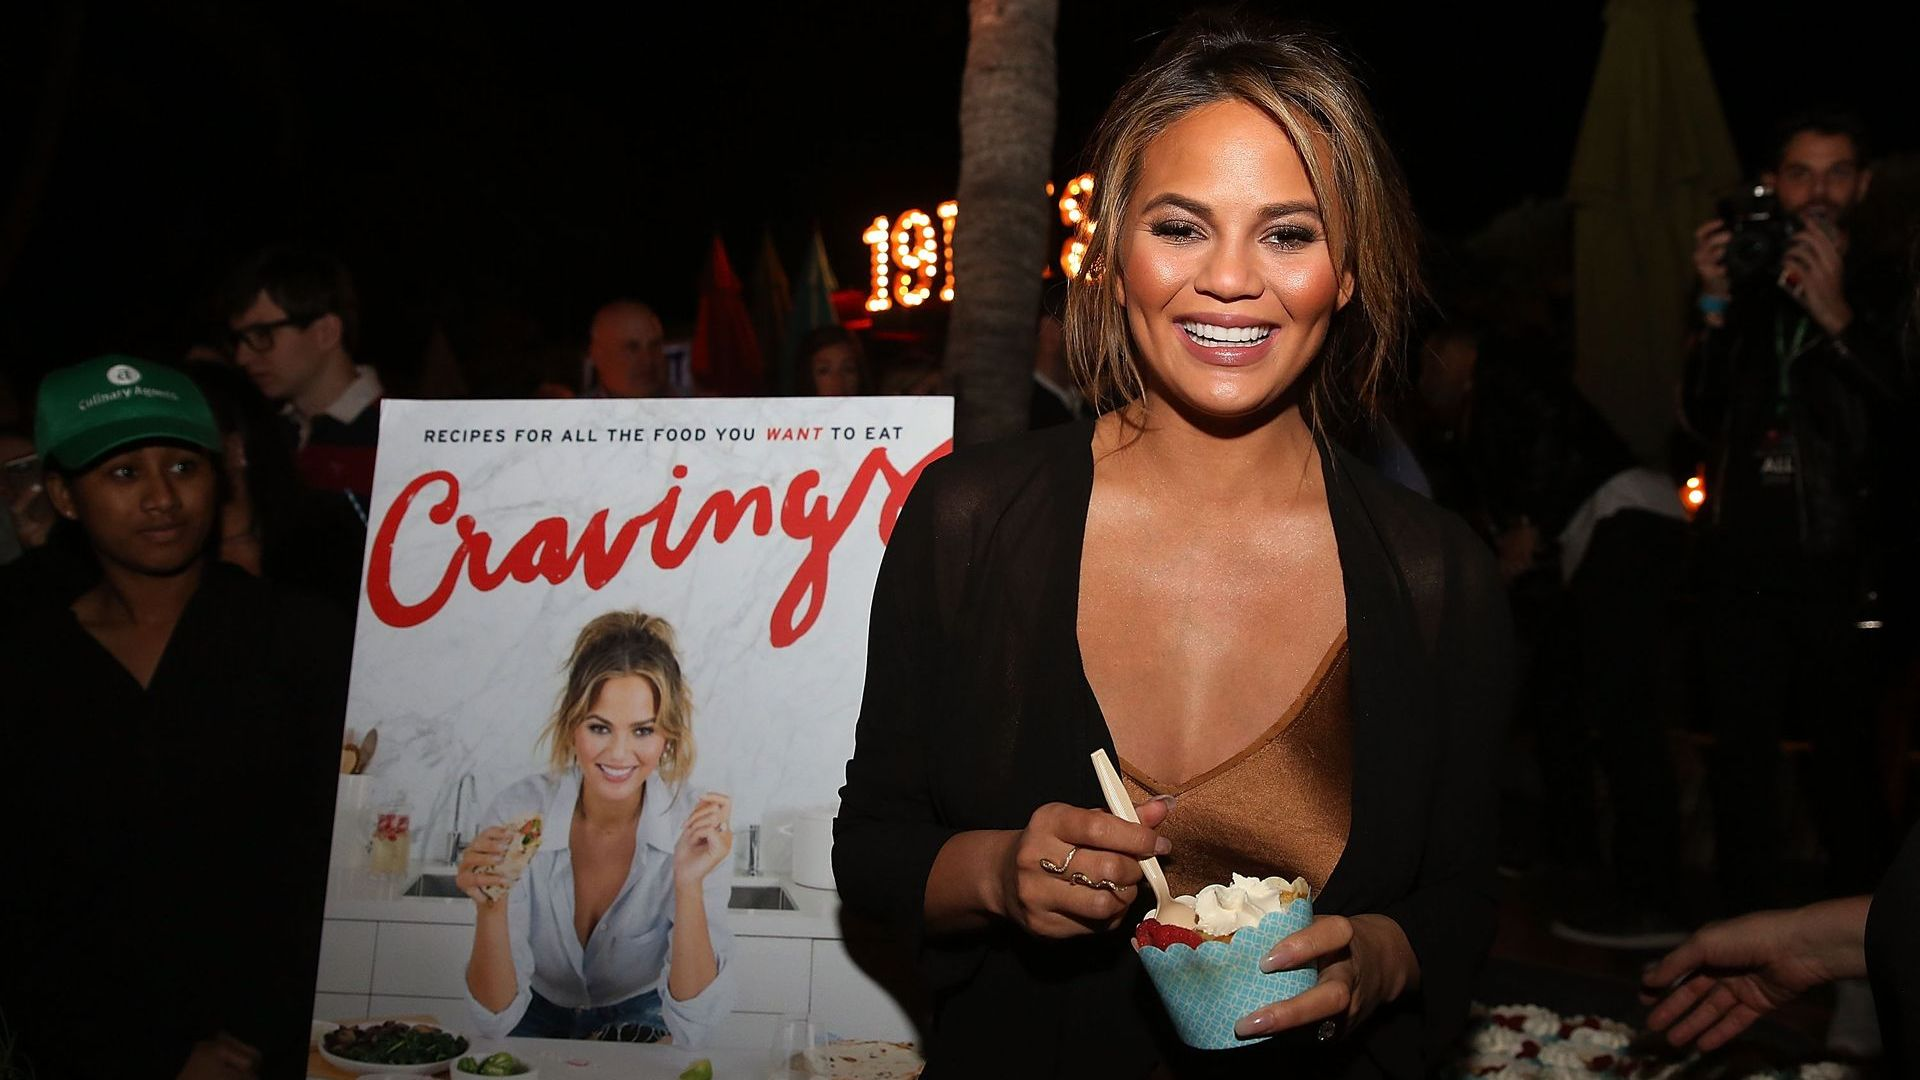 Chrissy Teigen Responds to Alison Roman's Comments: 'This Is a Huge Bummer'